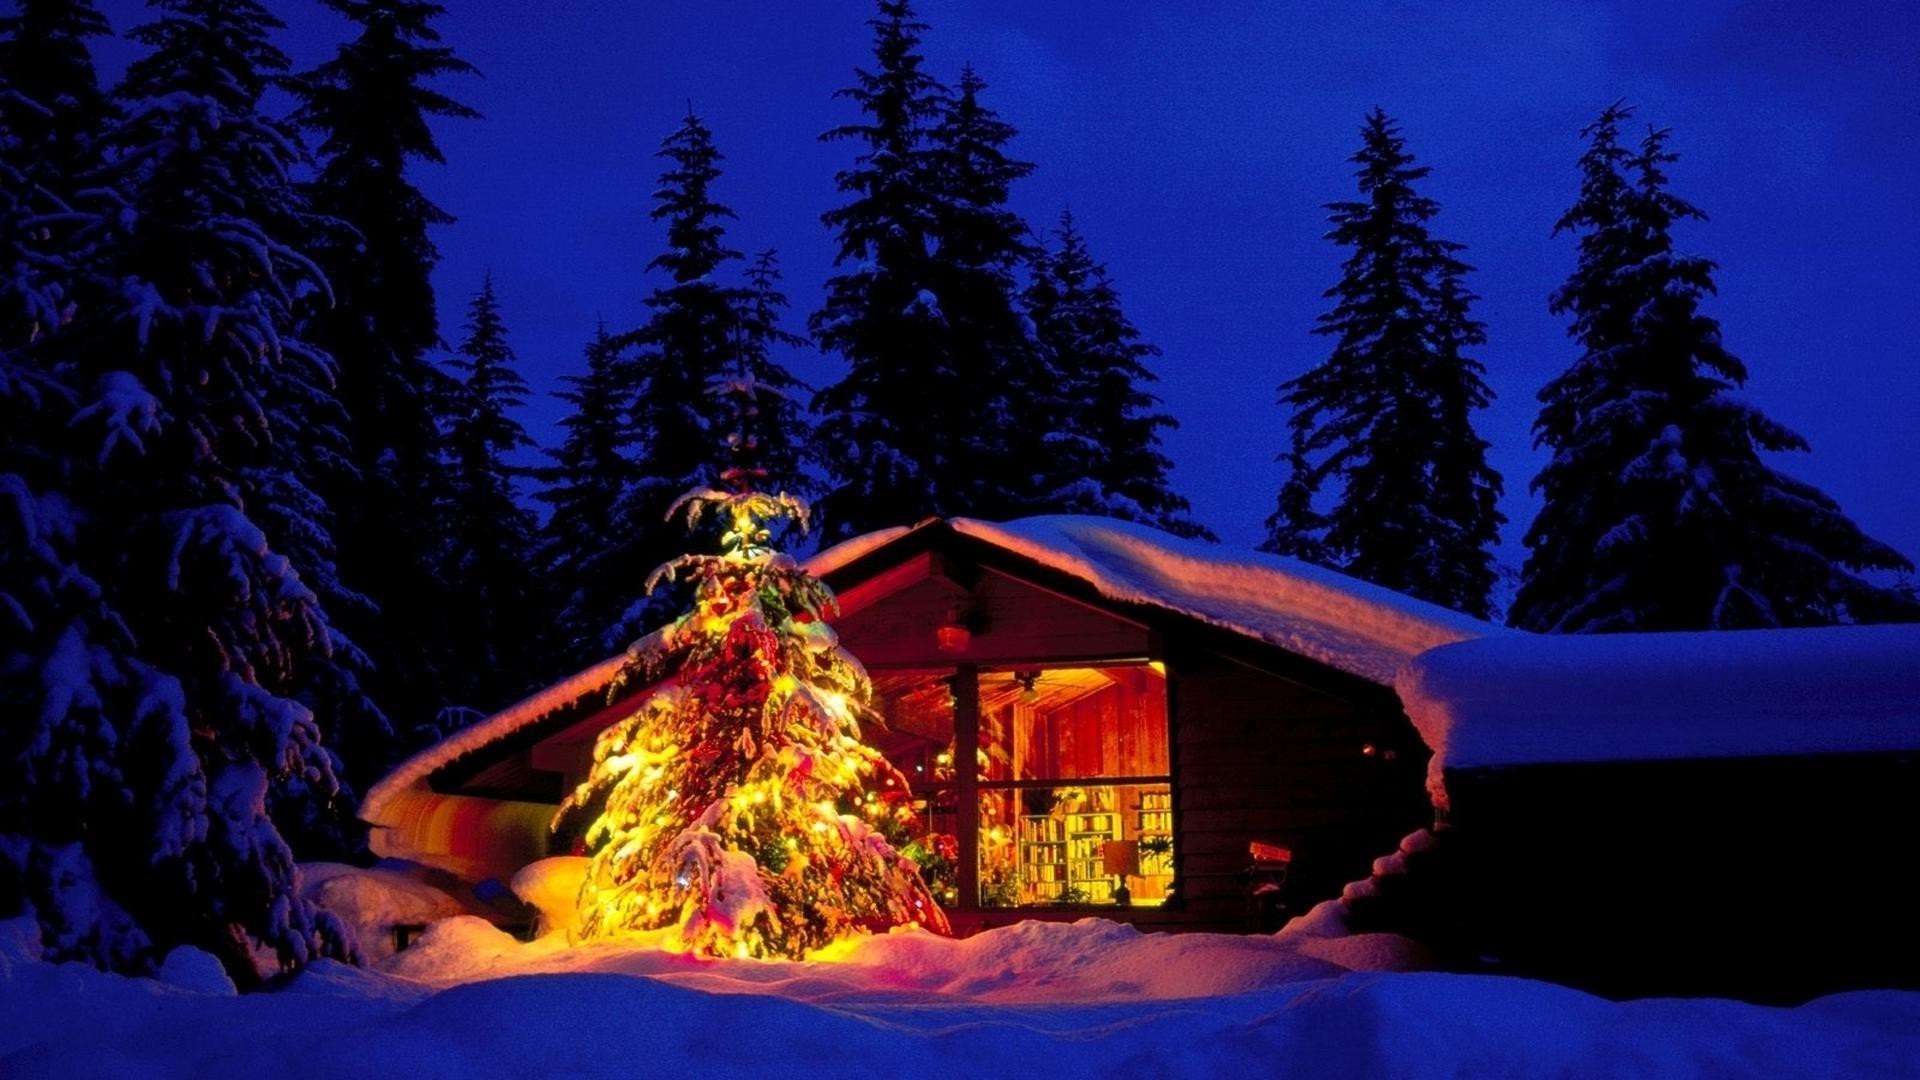 1920x1080 Free Christmas Cabin And Tree In Deep Snow - Landscapes Christmas Desktop  Wallpaper and Computer Background